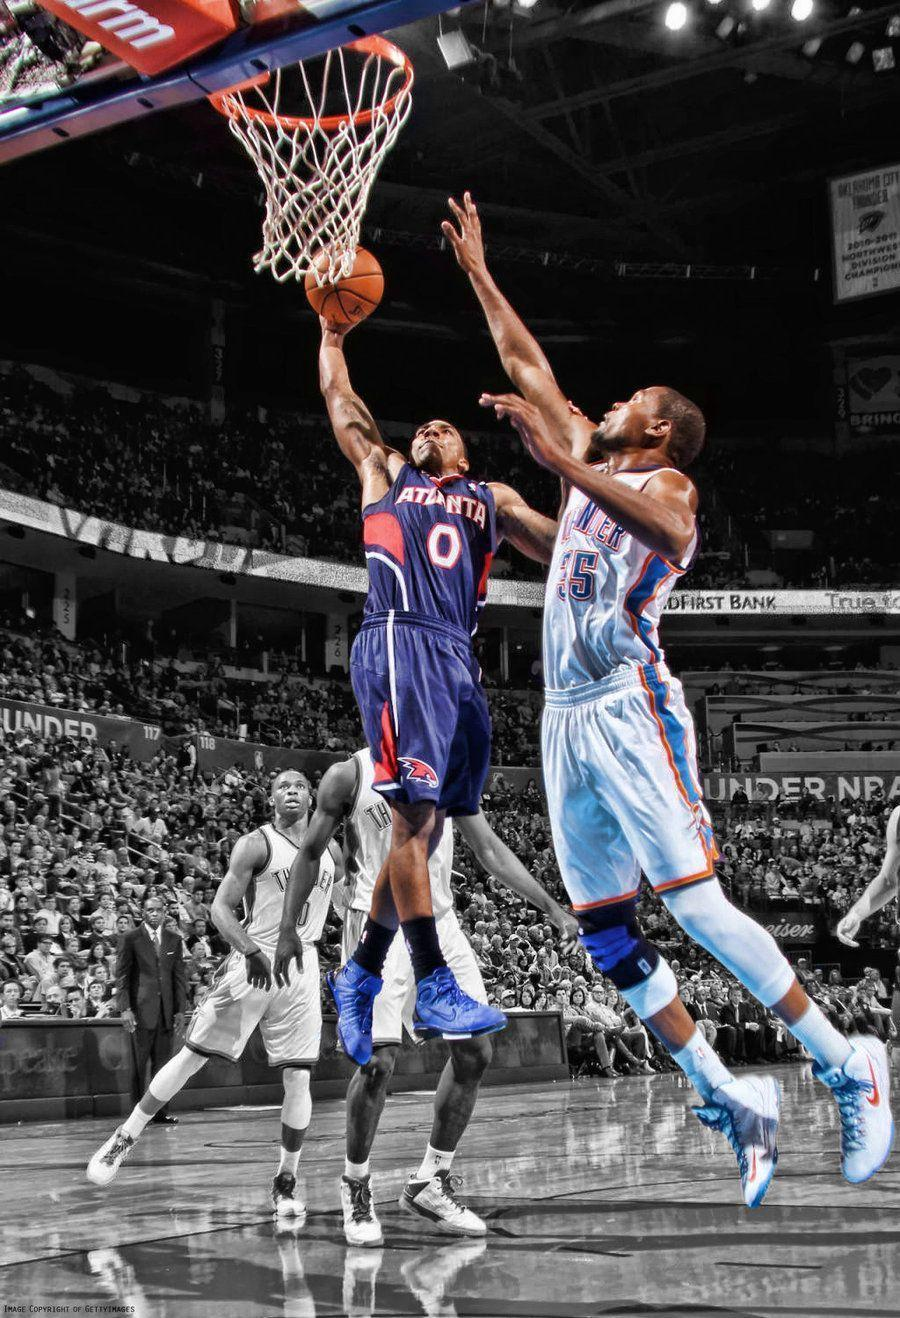 Nba Players Iphone Wallpaper Kevin Durant Dunk Wallpapers 2016 Wallpaper Cave